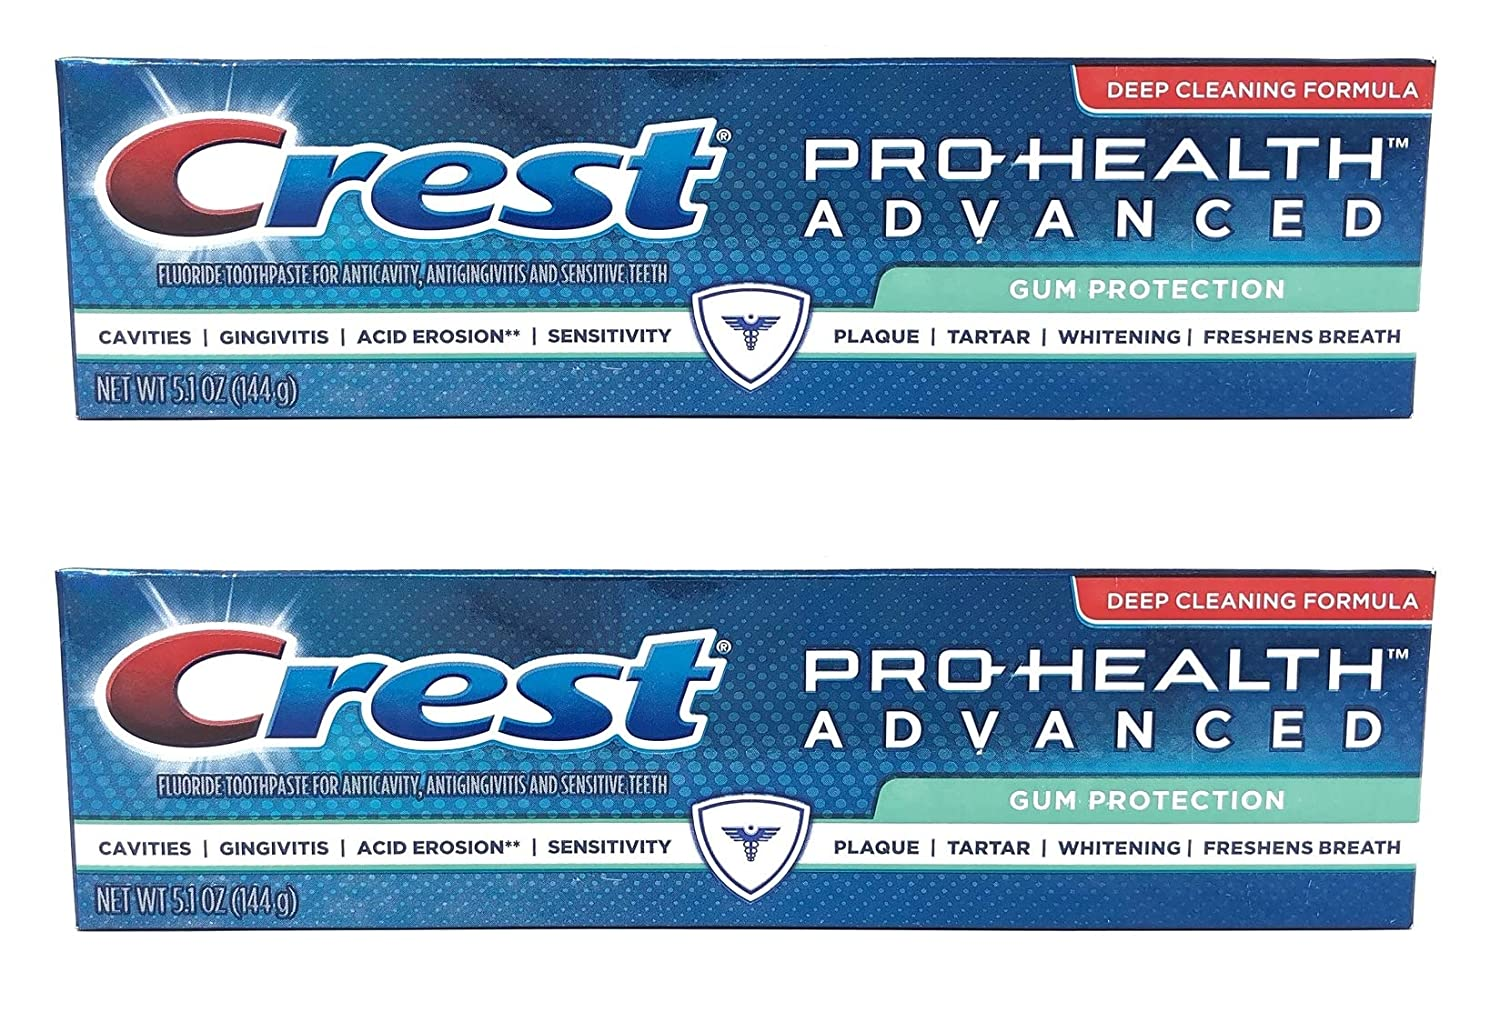 Crest Pro-Health Advanced Gum Protection Toothpaste, 5.1 oz (Pack of 2)